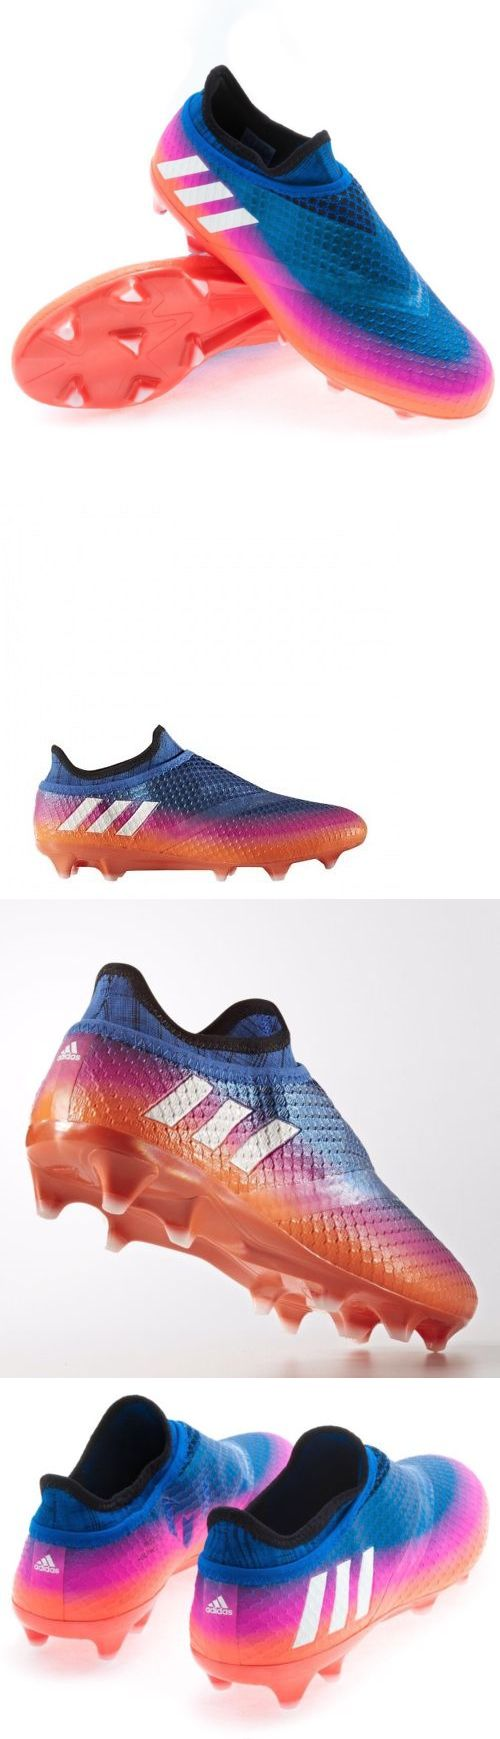 Men 109133: Adidas Messi 16+ Pureagility Fg Soccer Cleats Boots Size 9.5 Bb1871 Mens $299 -> BUY IT NOW ONLY: $109 on eBay!